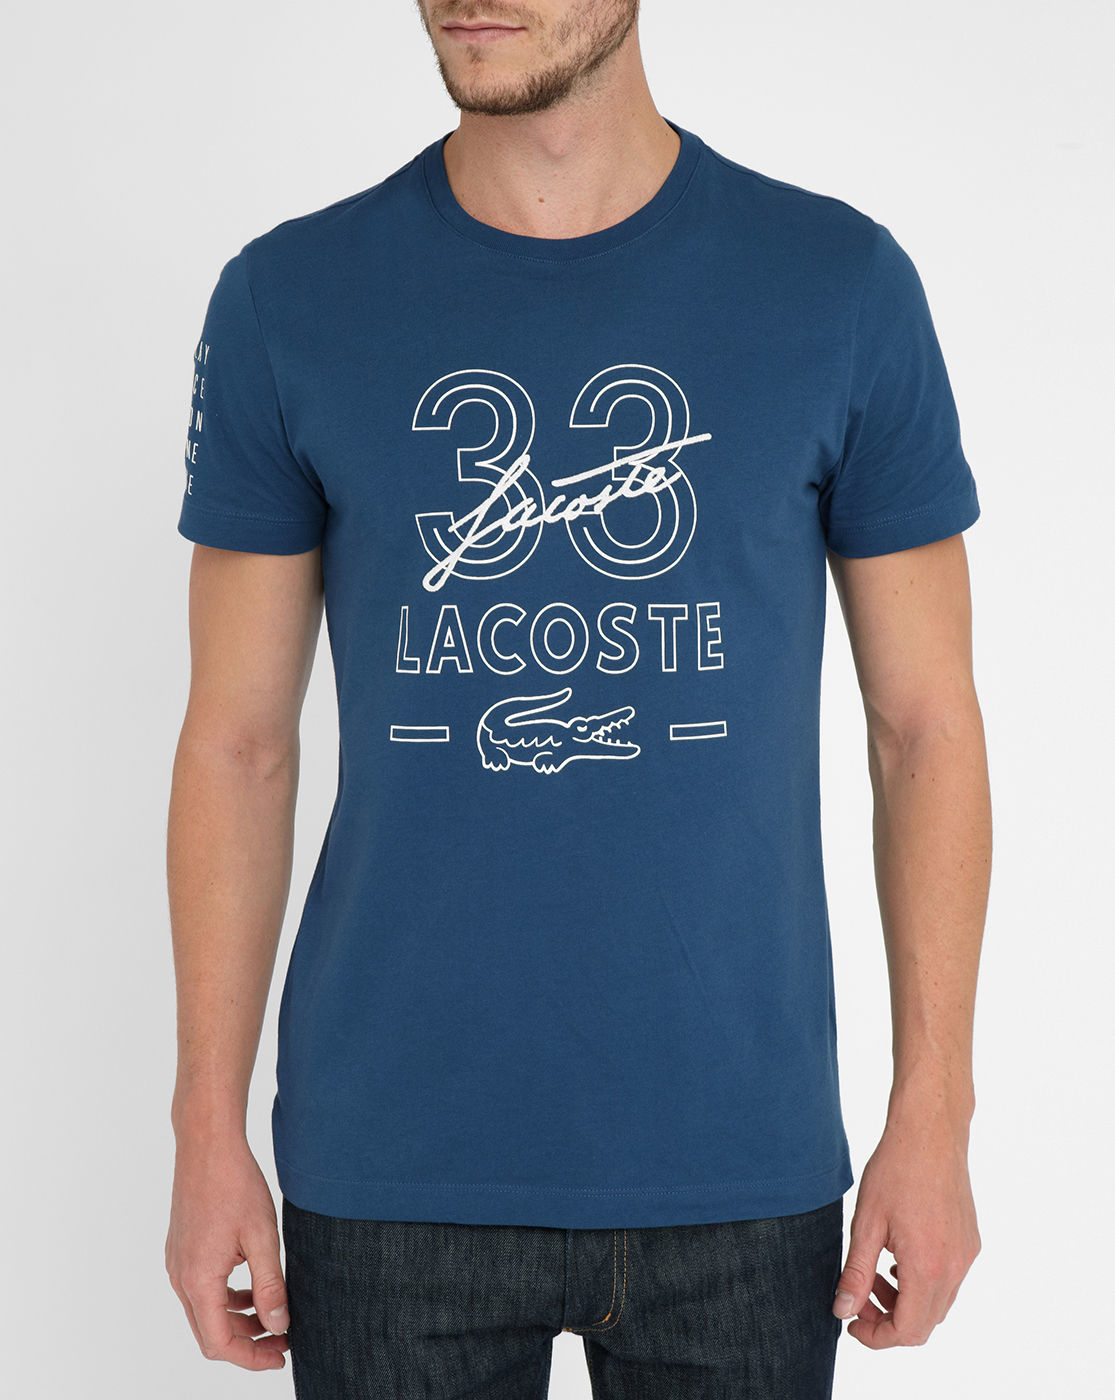 lacoste blue embroidered signature t shirt in blue for men lyst. Black Bedroom Furniture Sets. Home Design Ideas